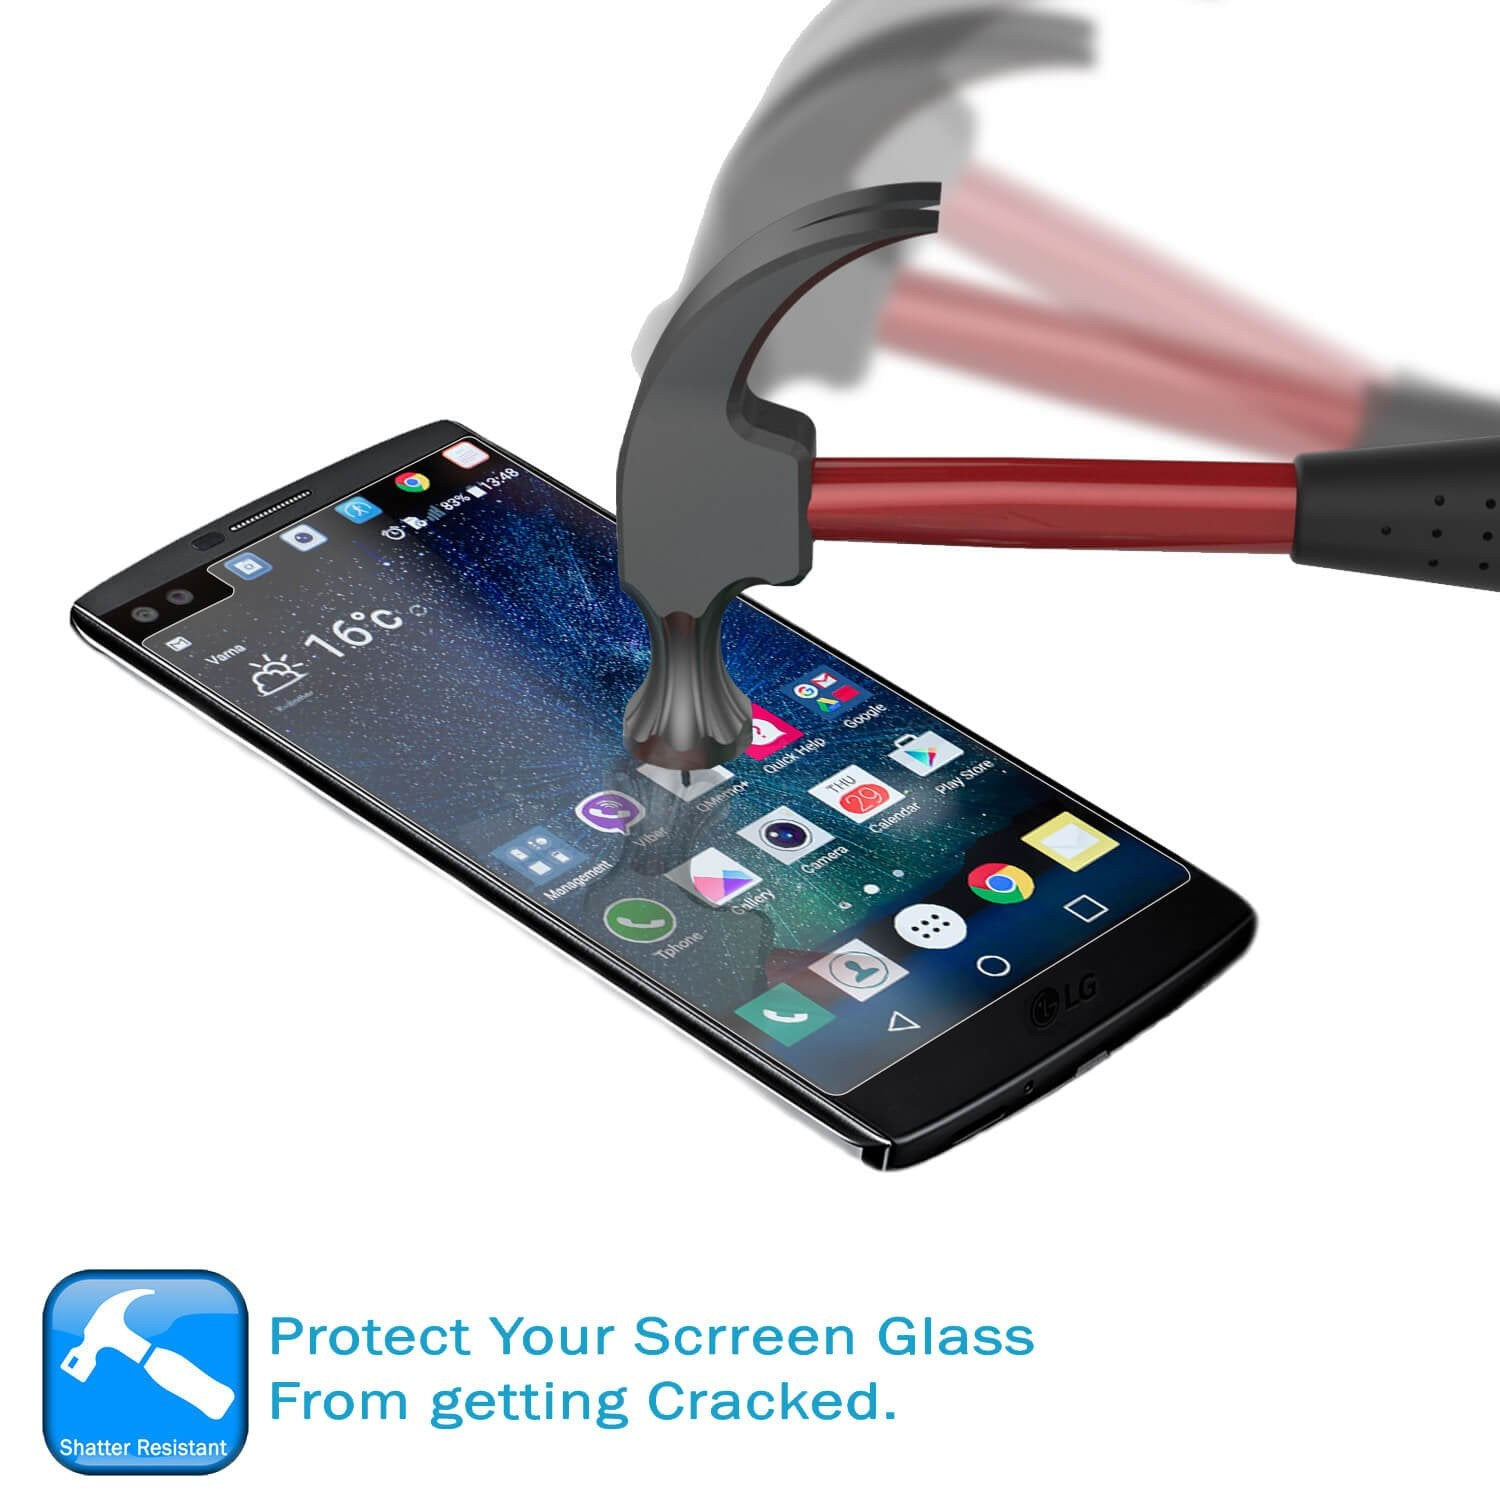 LG v10 Punkcase Glass SHIELD Tempered Glass Screen Protector 0.33mm Thick 9H Glass